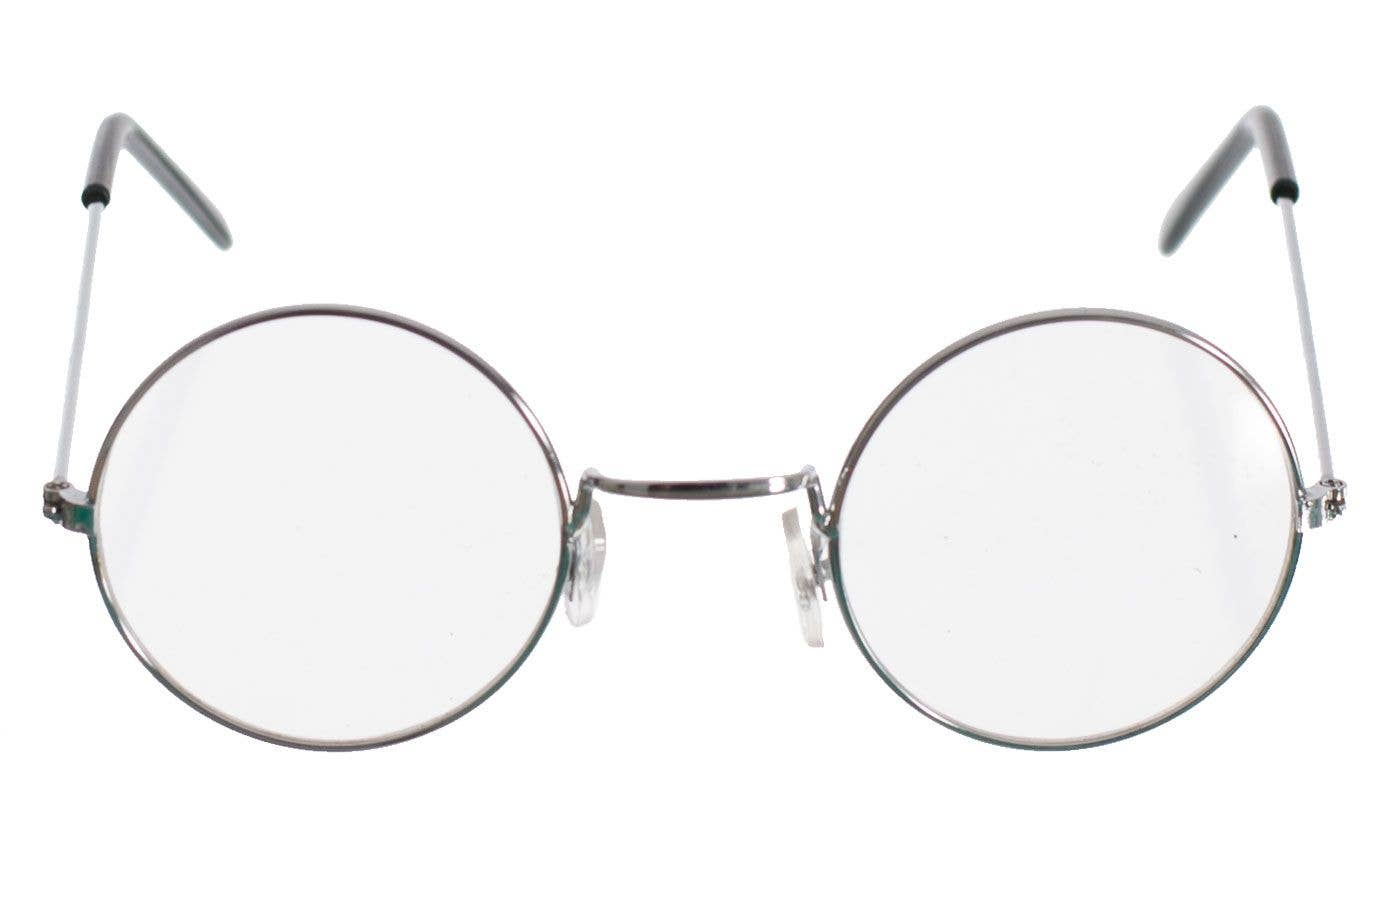 336bbfe4d5d More Views of Clear Round Silver Frame Glasses